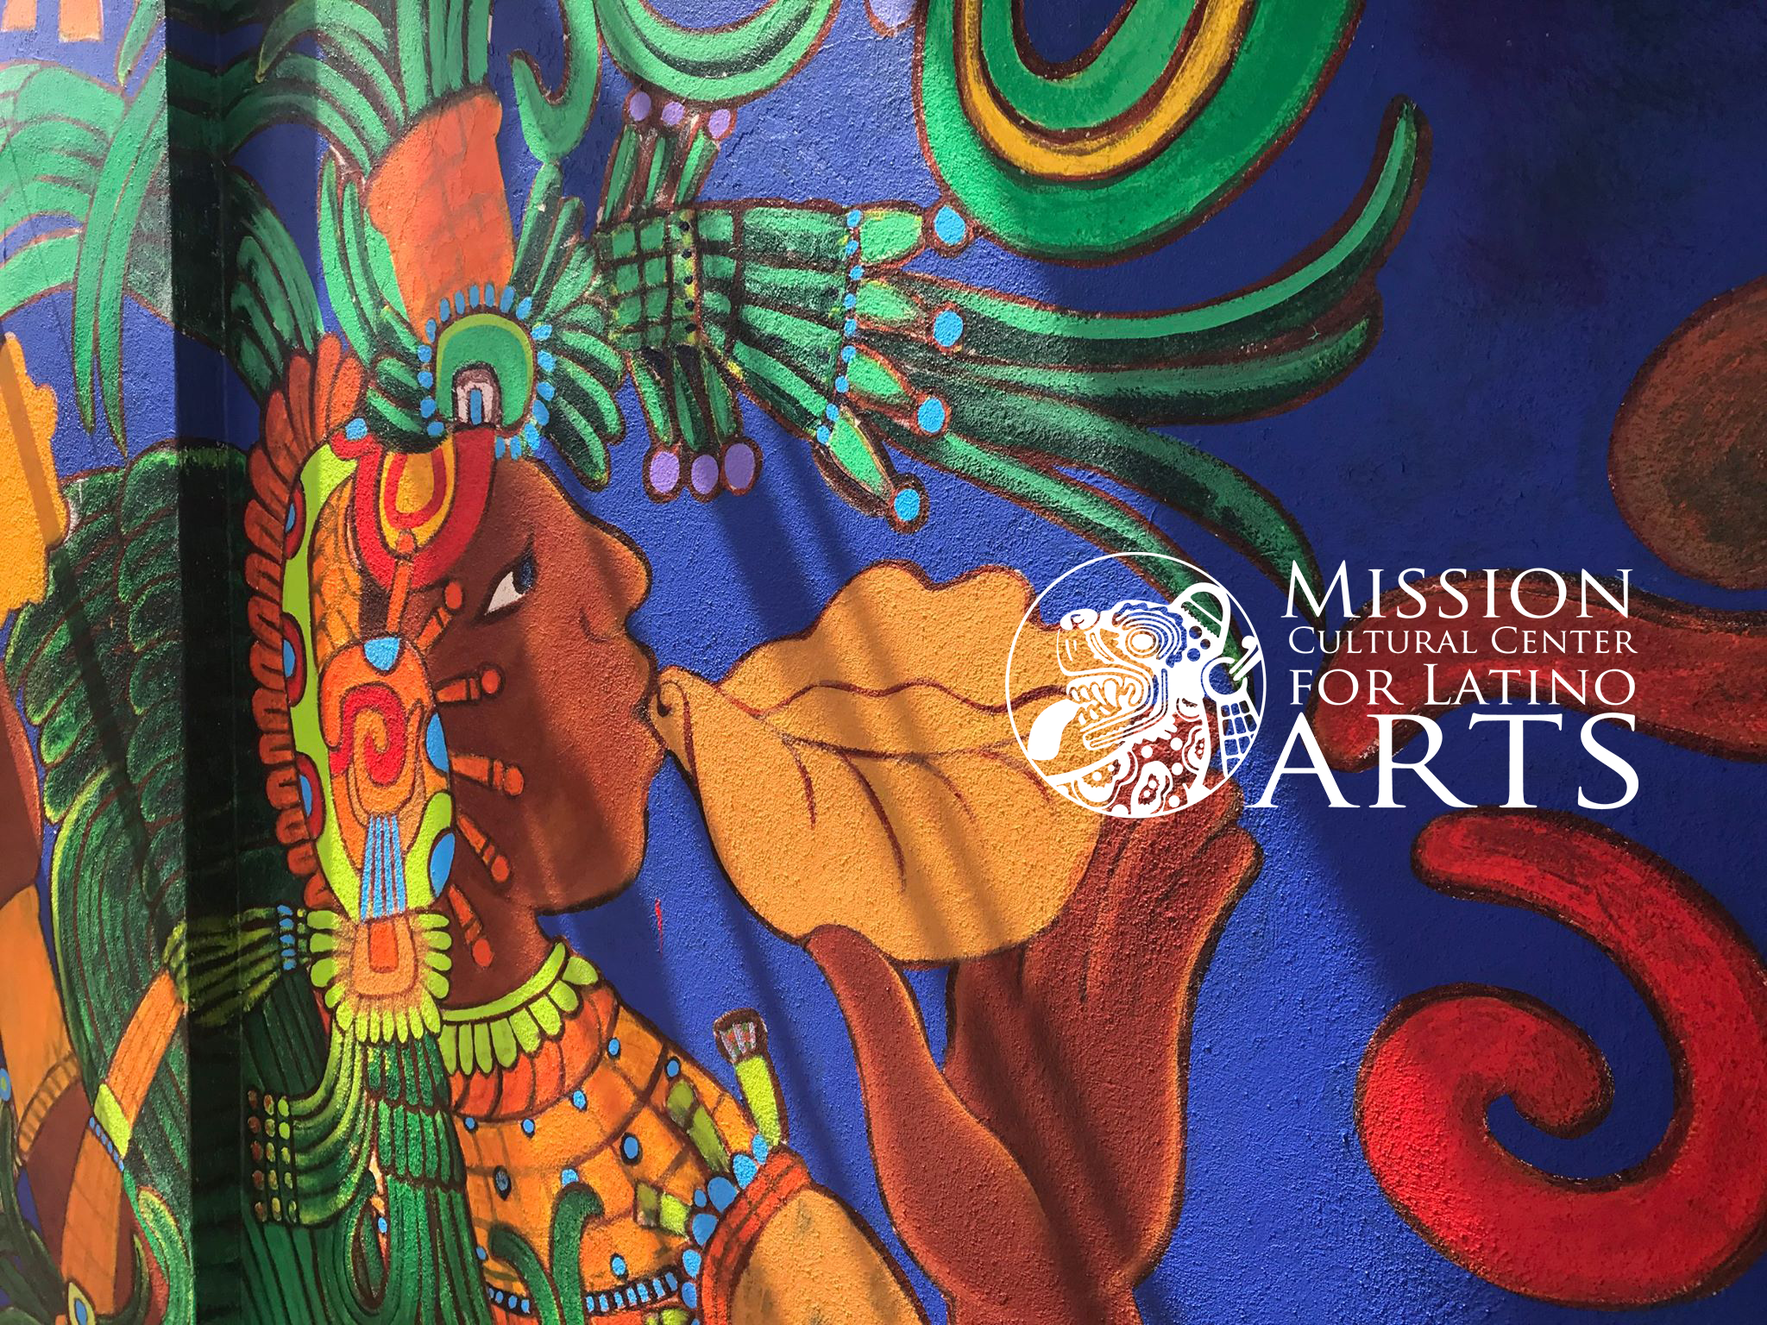 The Mission with a mission. Help the Mission Cultural Center for Latino Arts raise 30,000 dollars.   image